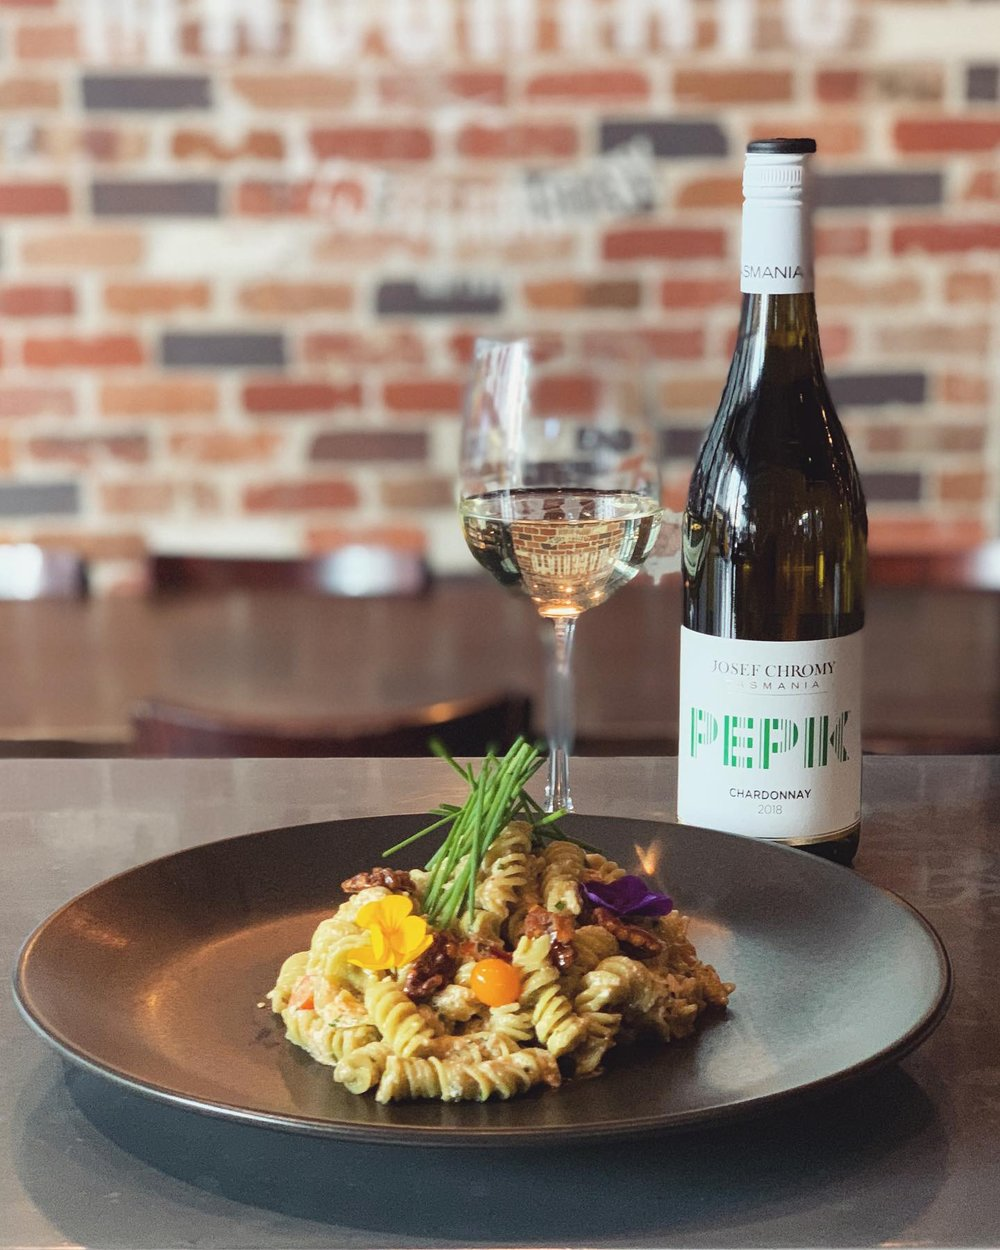 8-14 May - One of our weekly specials this week: homemade spinach fusilli with pan-tossed heirloom tomatoes, toasted walnuts, cream of ricotta and EV olive oil.Best enjoyed with a glass of our resident wine, Josef Chromy 'Pepik' Chardonnay (TAS).